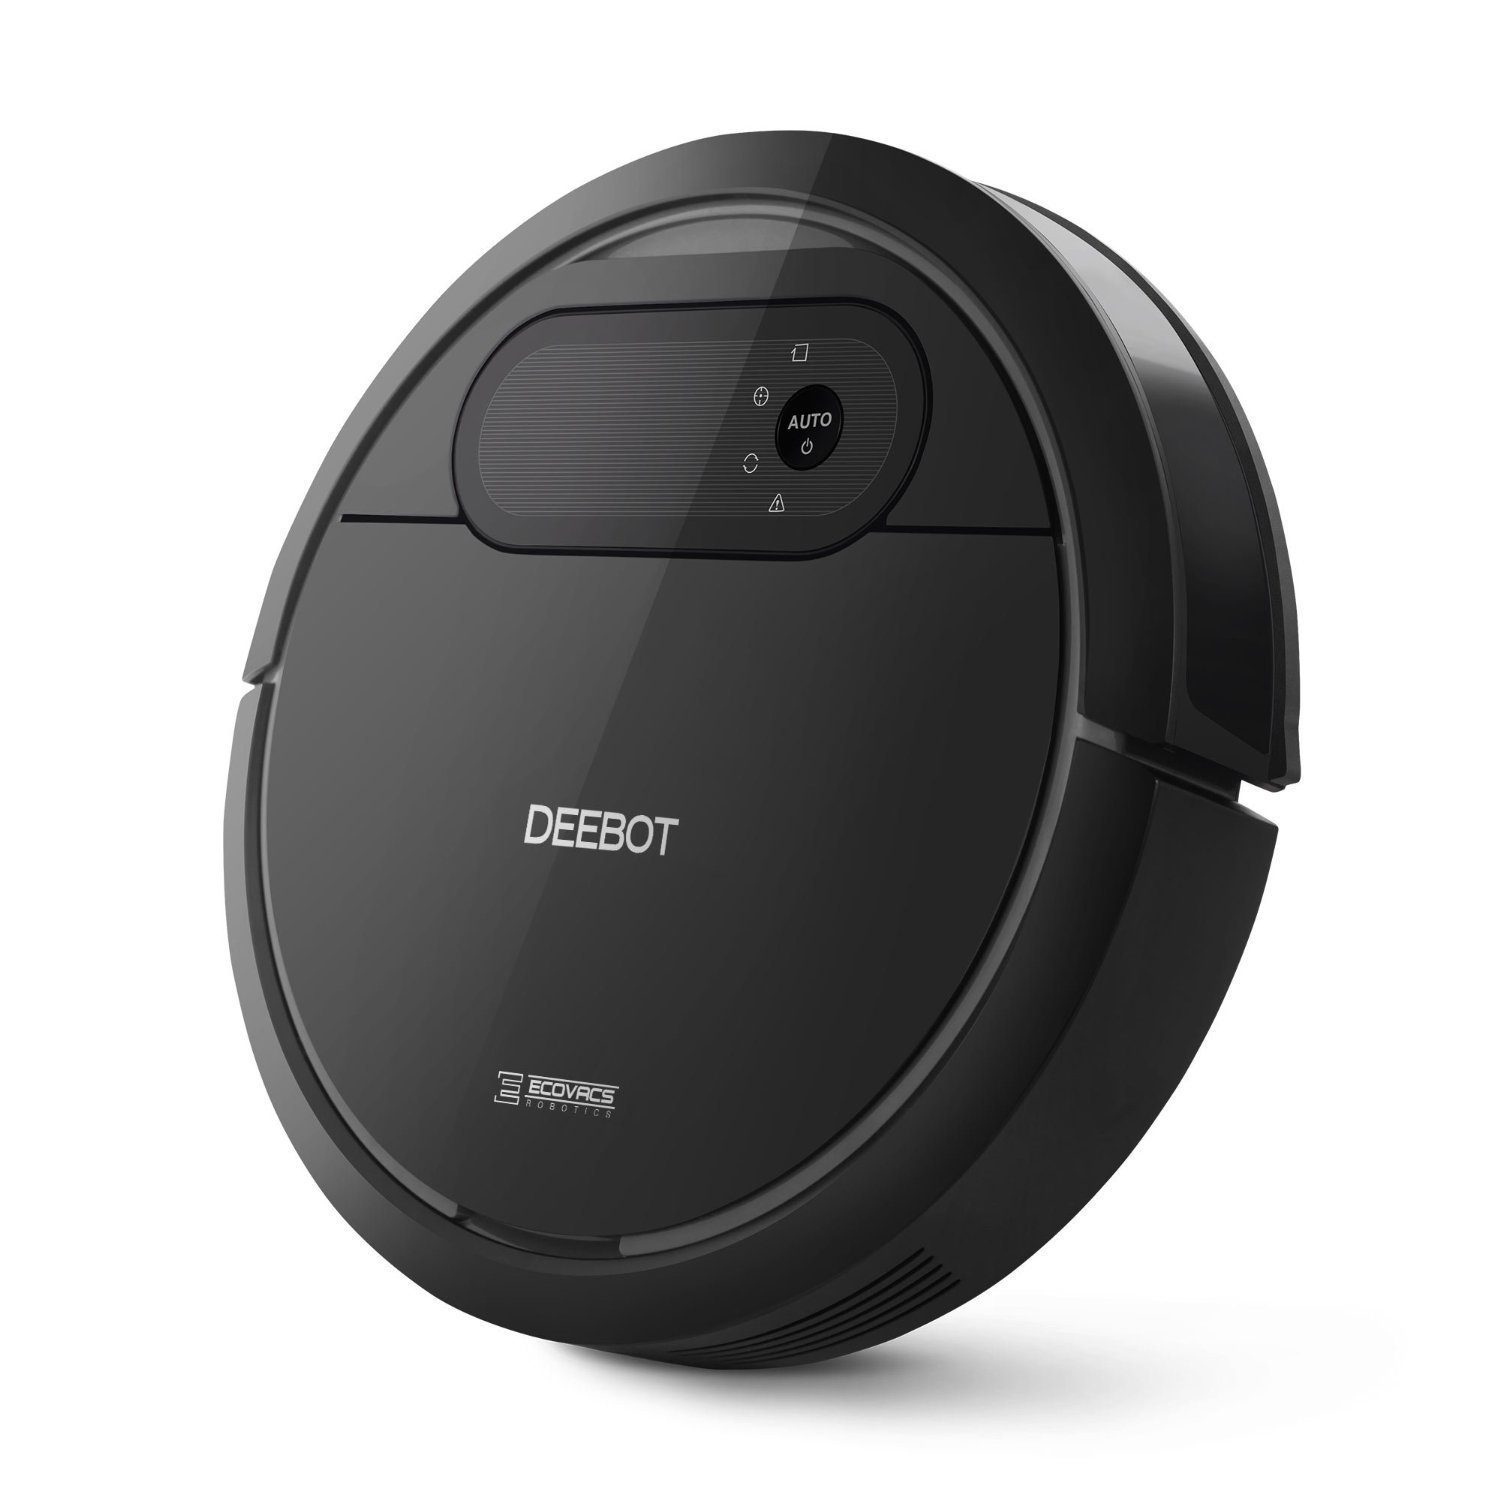 Provided 2018 Robot Vacuum Cleaner Smart With Wet Mopping Robot Aspirador With Wiping Cleaning Technology For Pet Hair Thin Carpets For Sale Home Appliances Cleaning Appliances